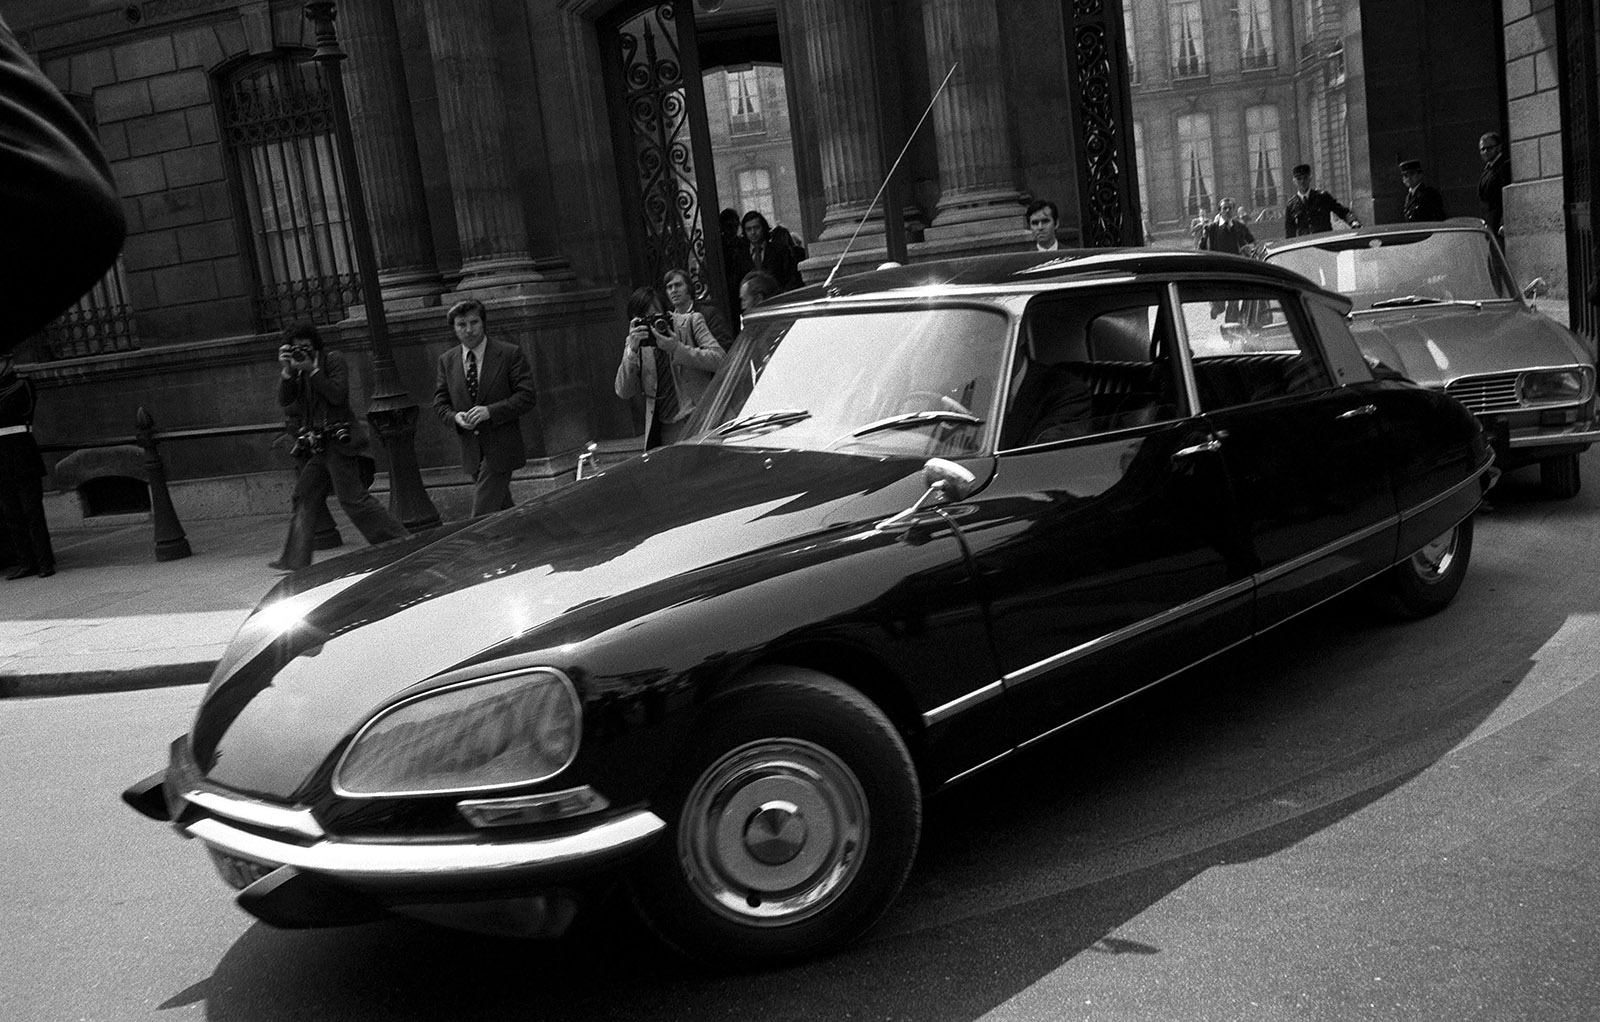 Then newly elected president of France, Valéry Giscard d'Estaing taking the wheel of a Citroën DS, Paris, May 27, 1974